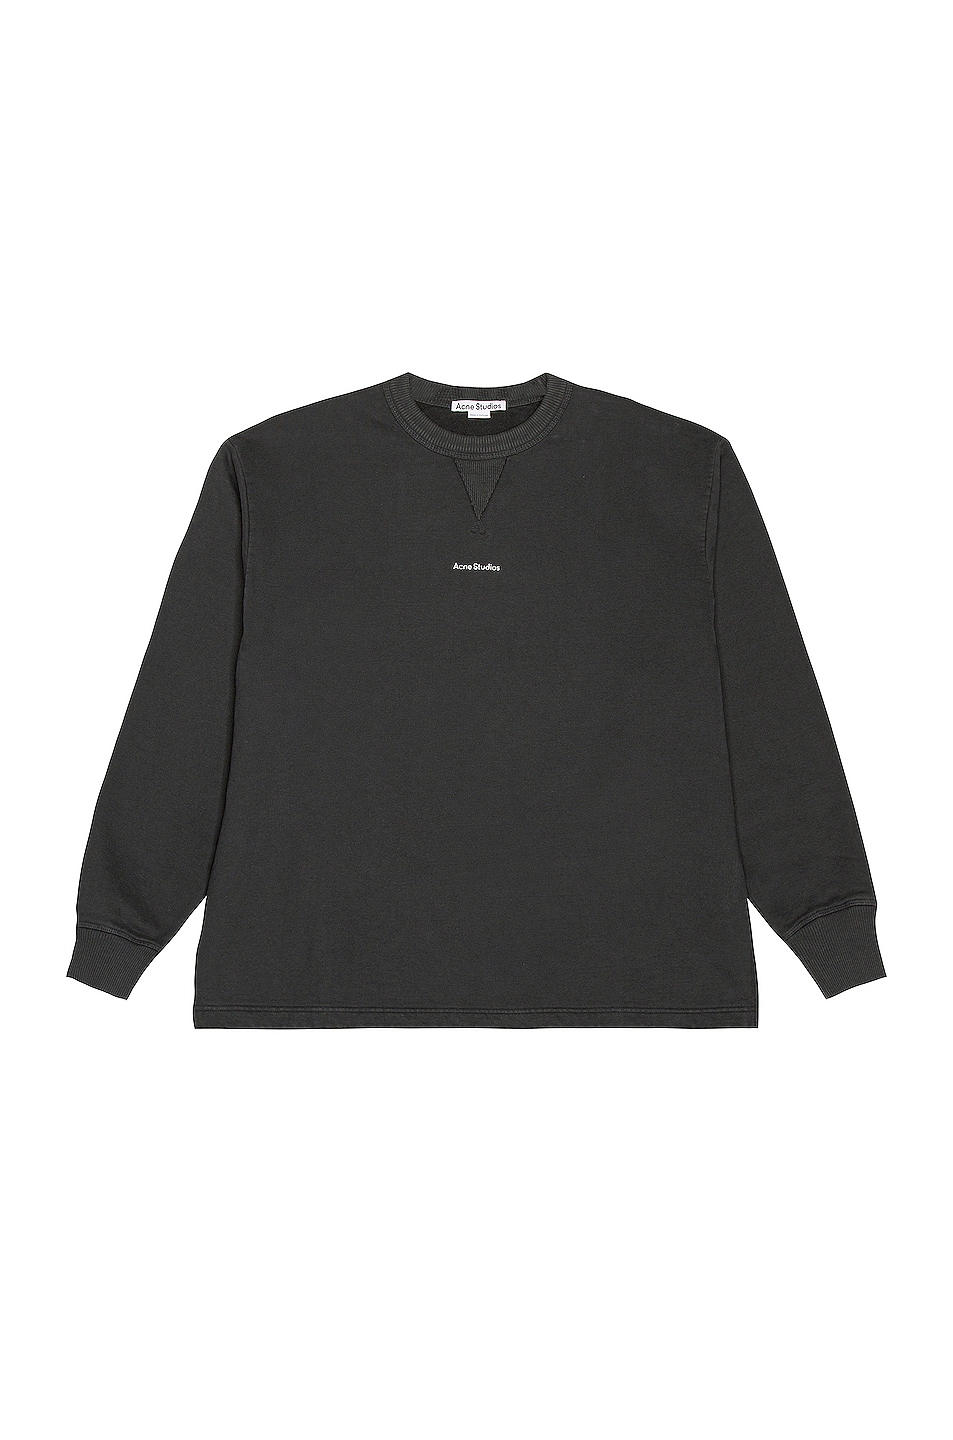 Image 1 of Acne Studios Sweatshirt in Black